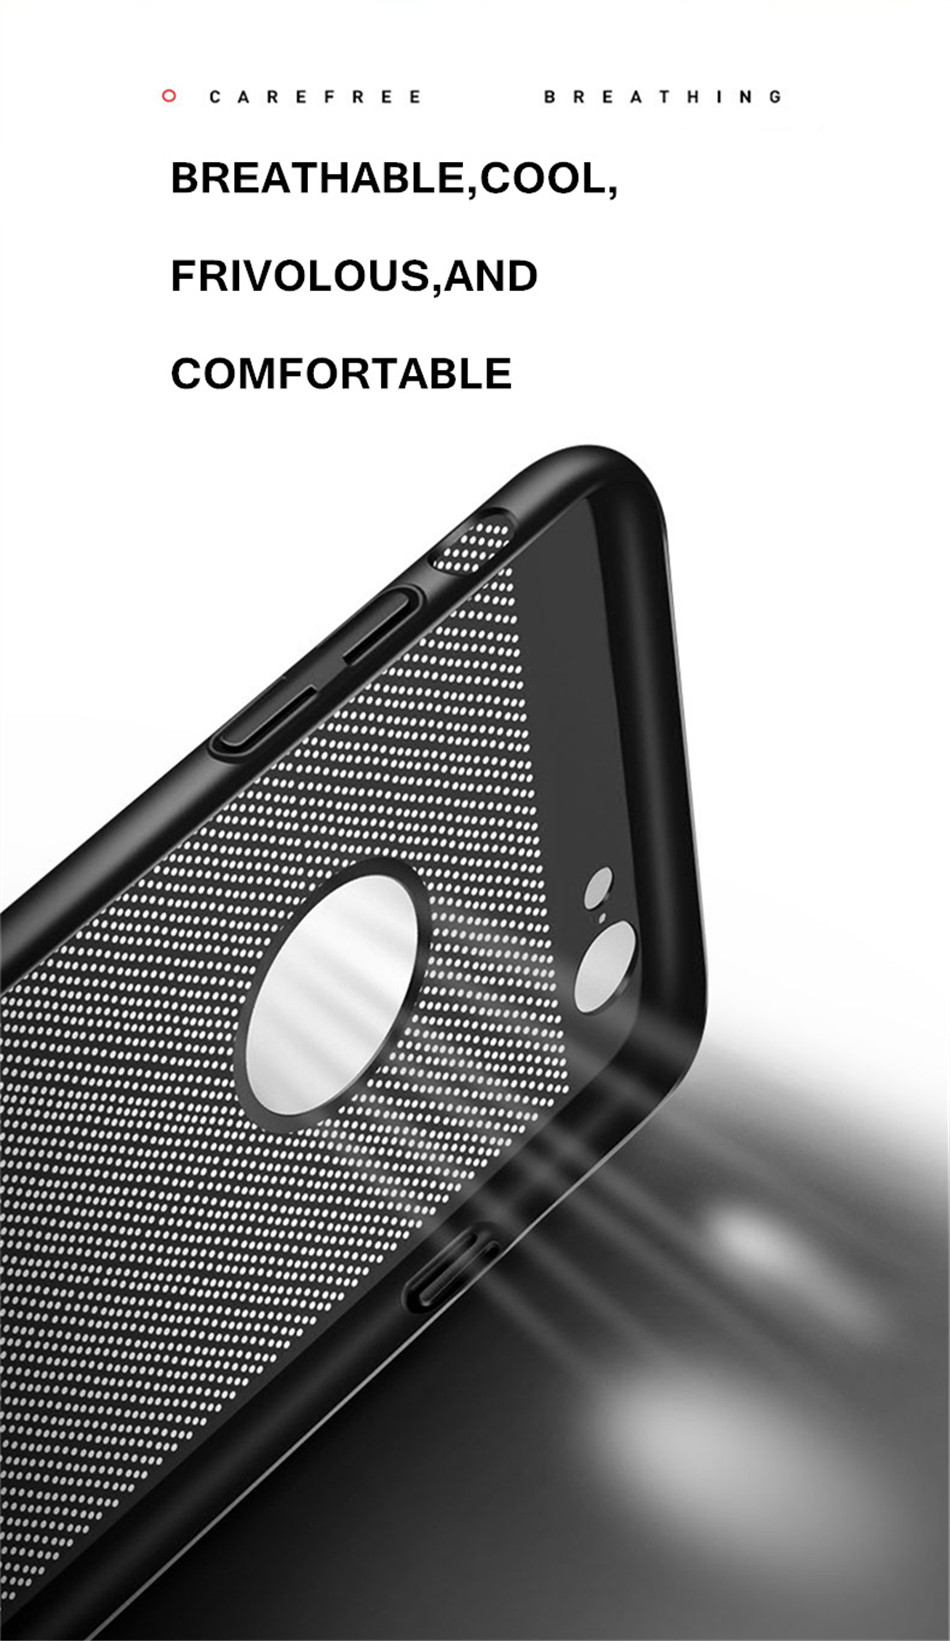 Heat dissipation iPhone Case - Hard Back PC Protect Shell 4